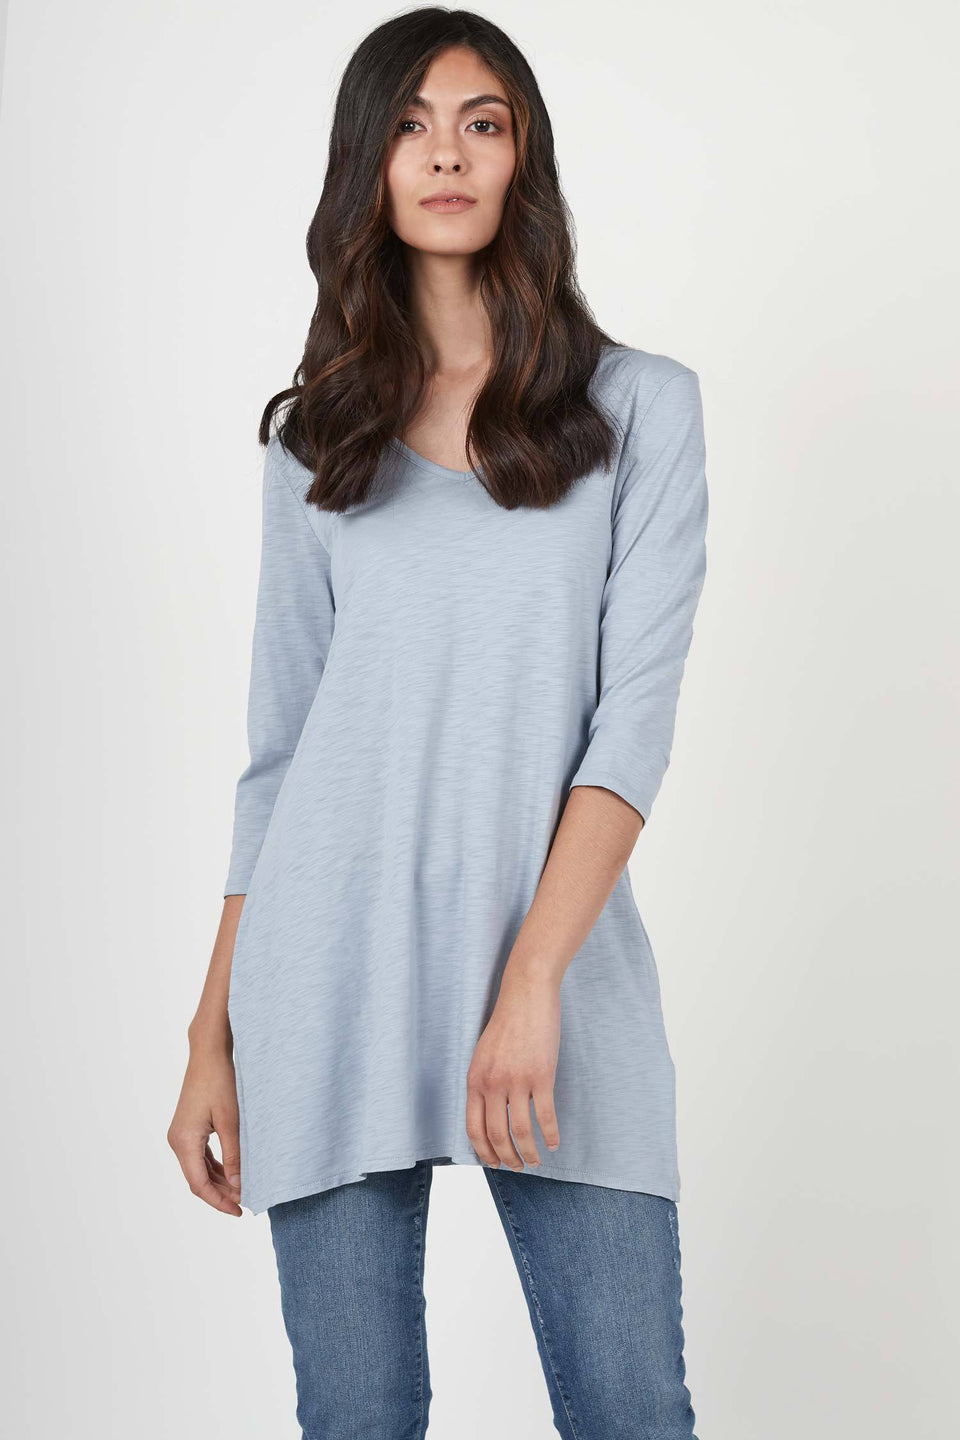 Essential Slub Tunic in Blue Fog